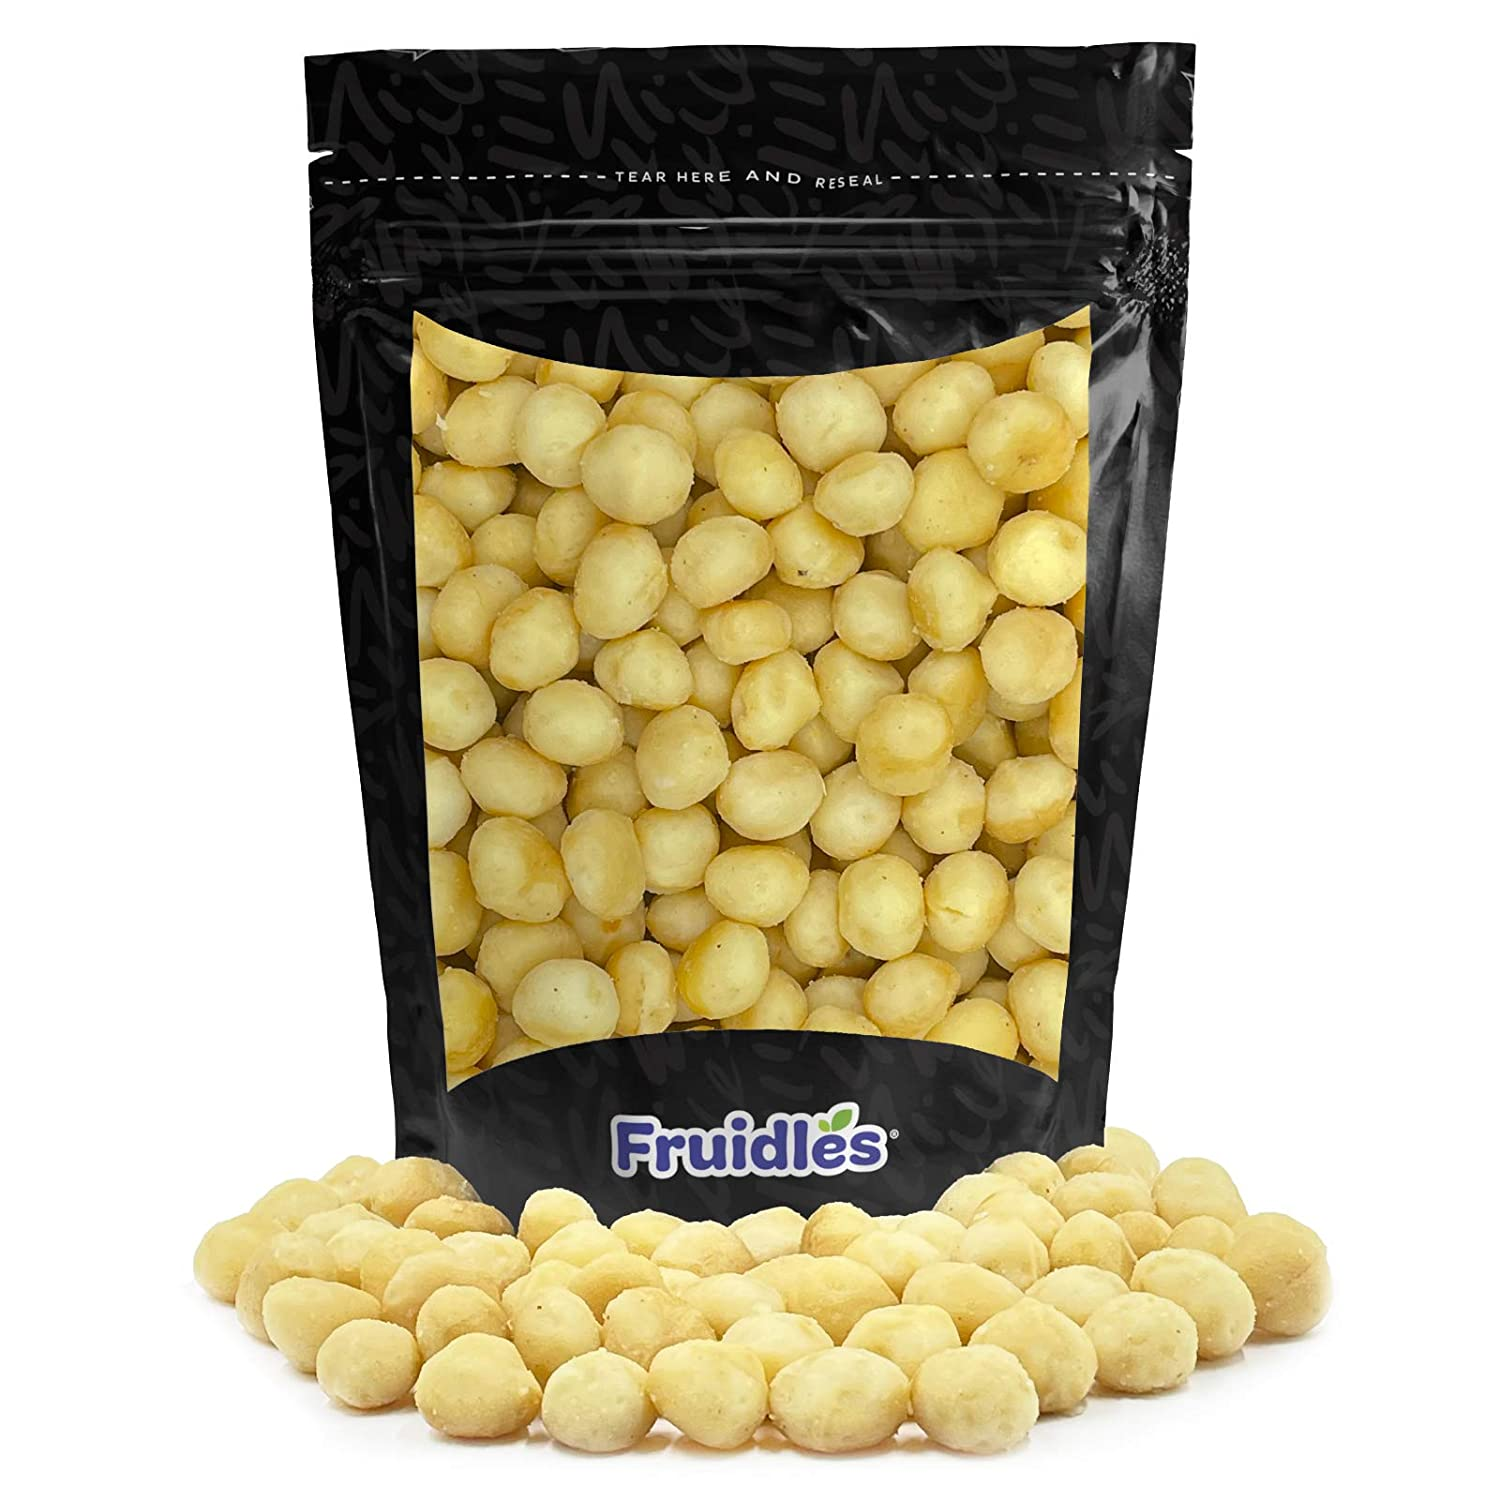 Macadamia Nuts, Roasted & Salted, Non-GMO, Gluten-Free, Healthy Fat, Kosher Certified, Emergency Food, Survival Food, Half-Pound